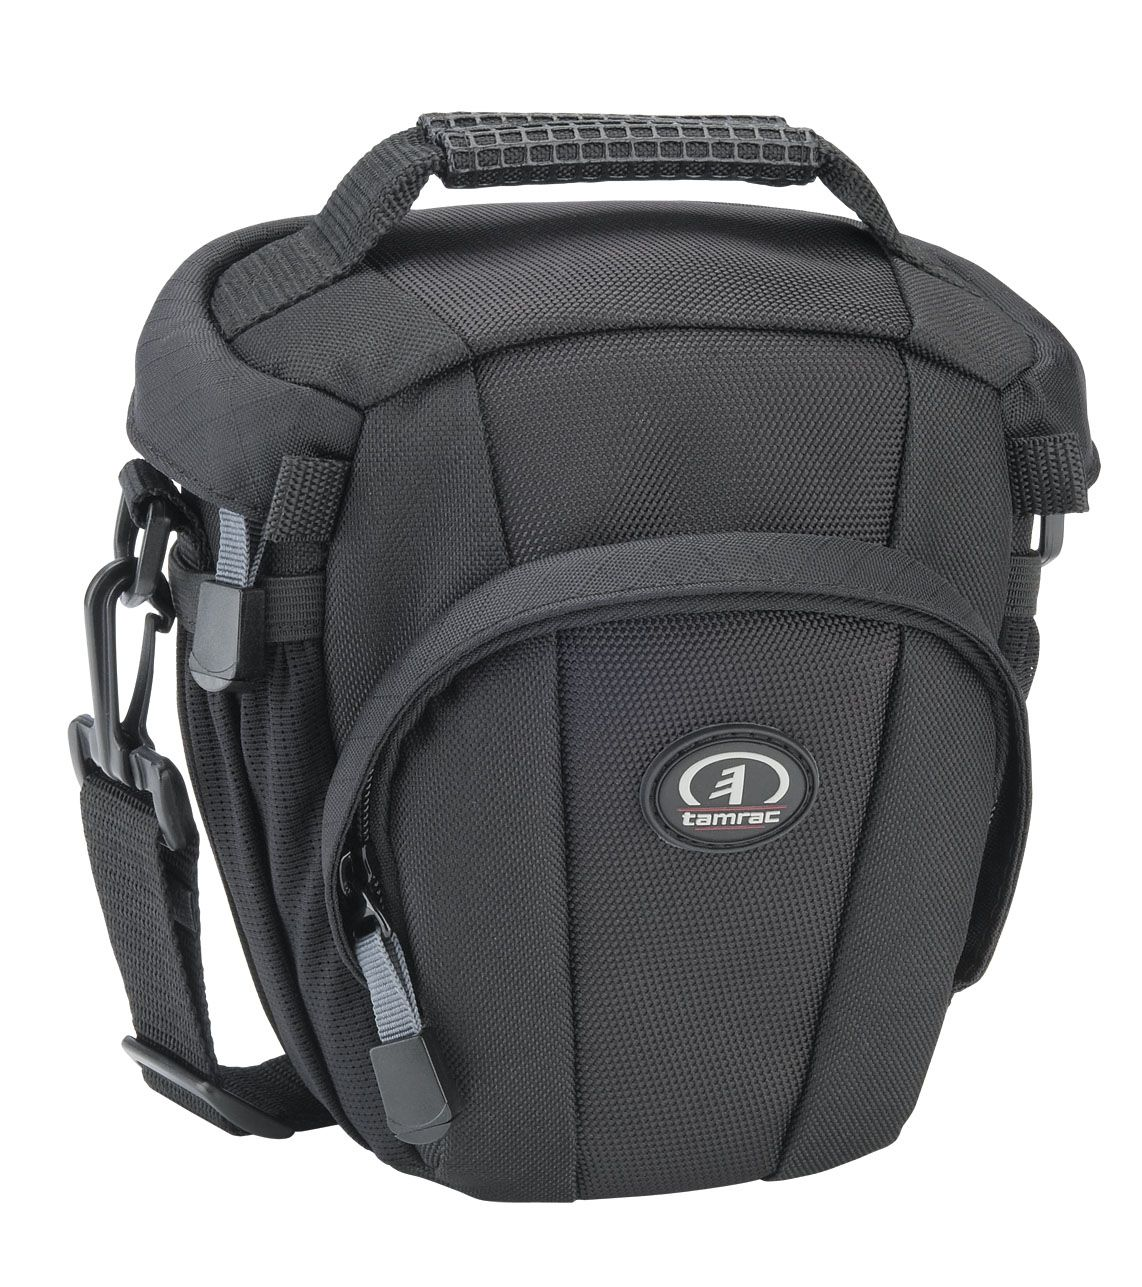 Tamrac 5714 EVOLUTION ZOOM 14 DSLR Camera Case